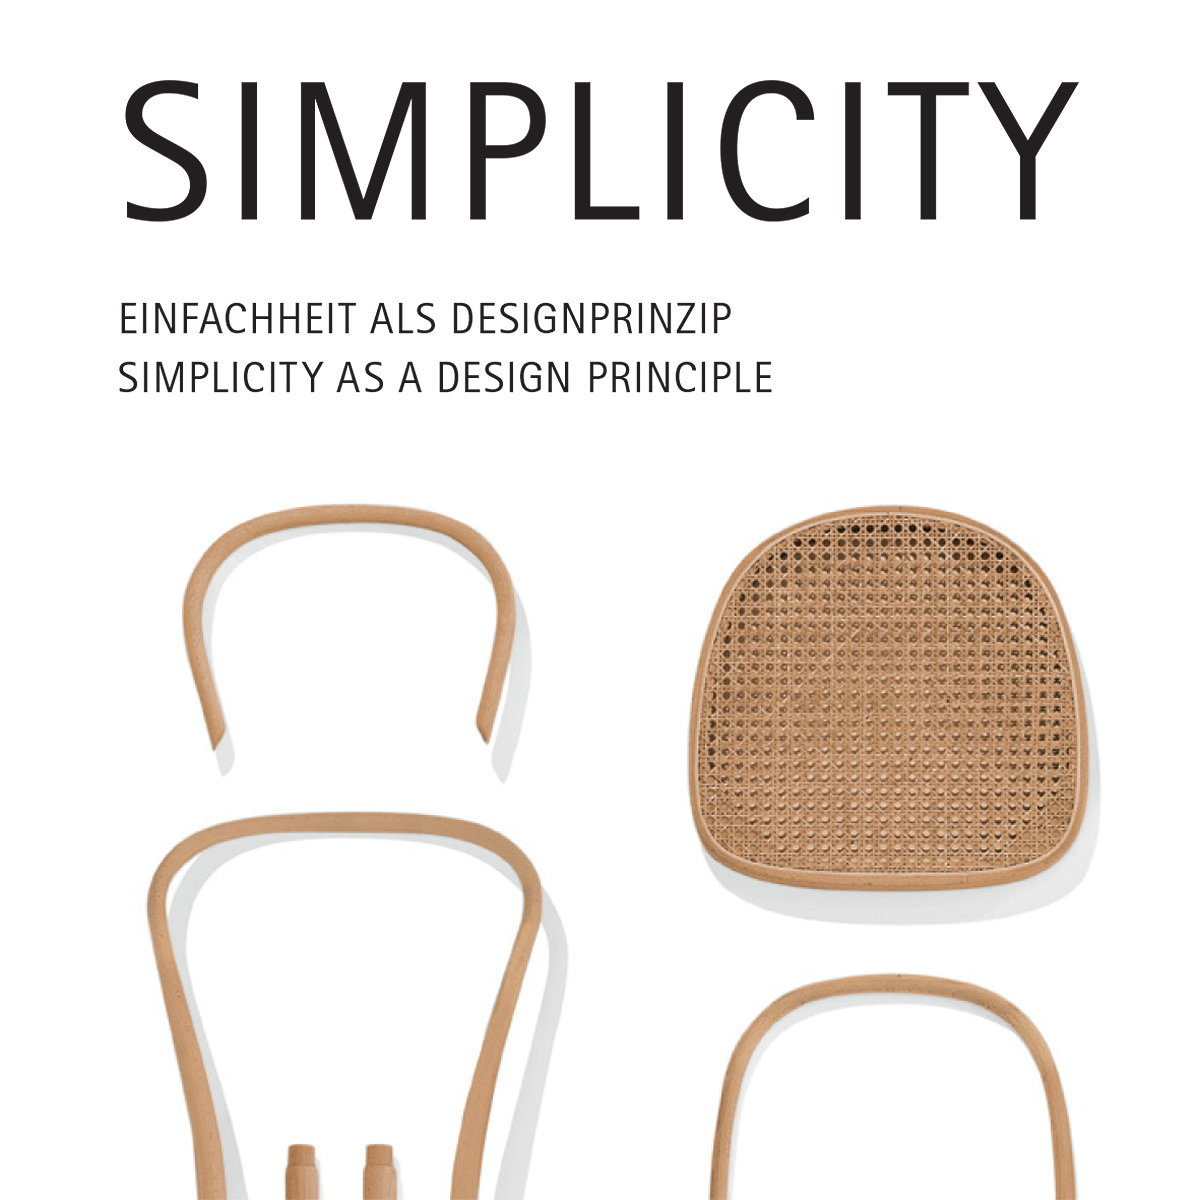 Simplicity as a Design Principle Exhibition at Red Dot Design Museum